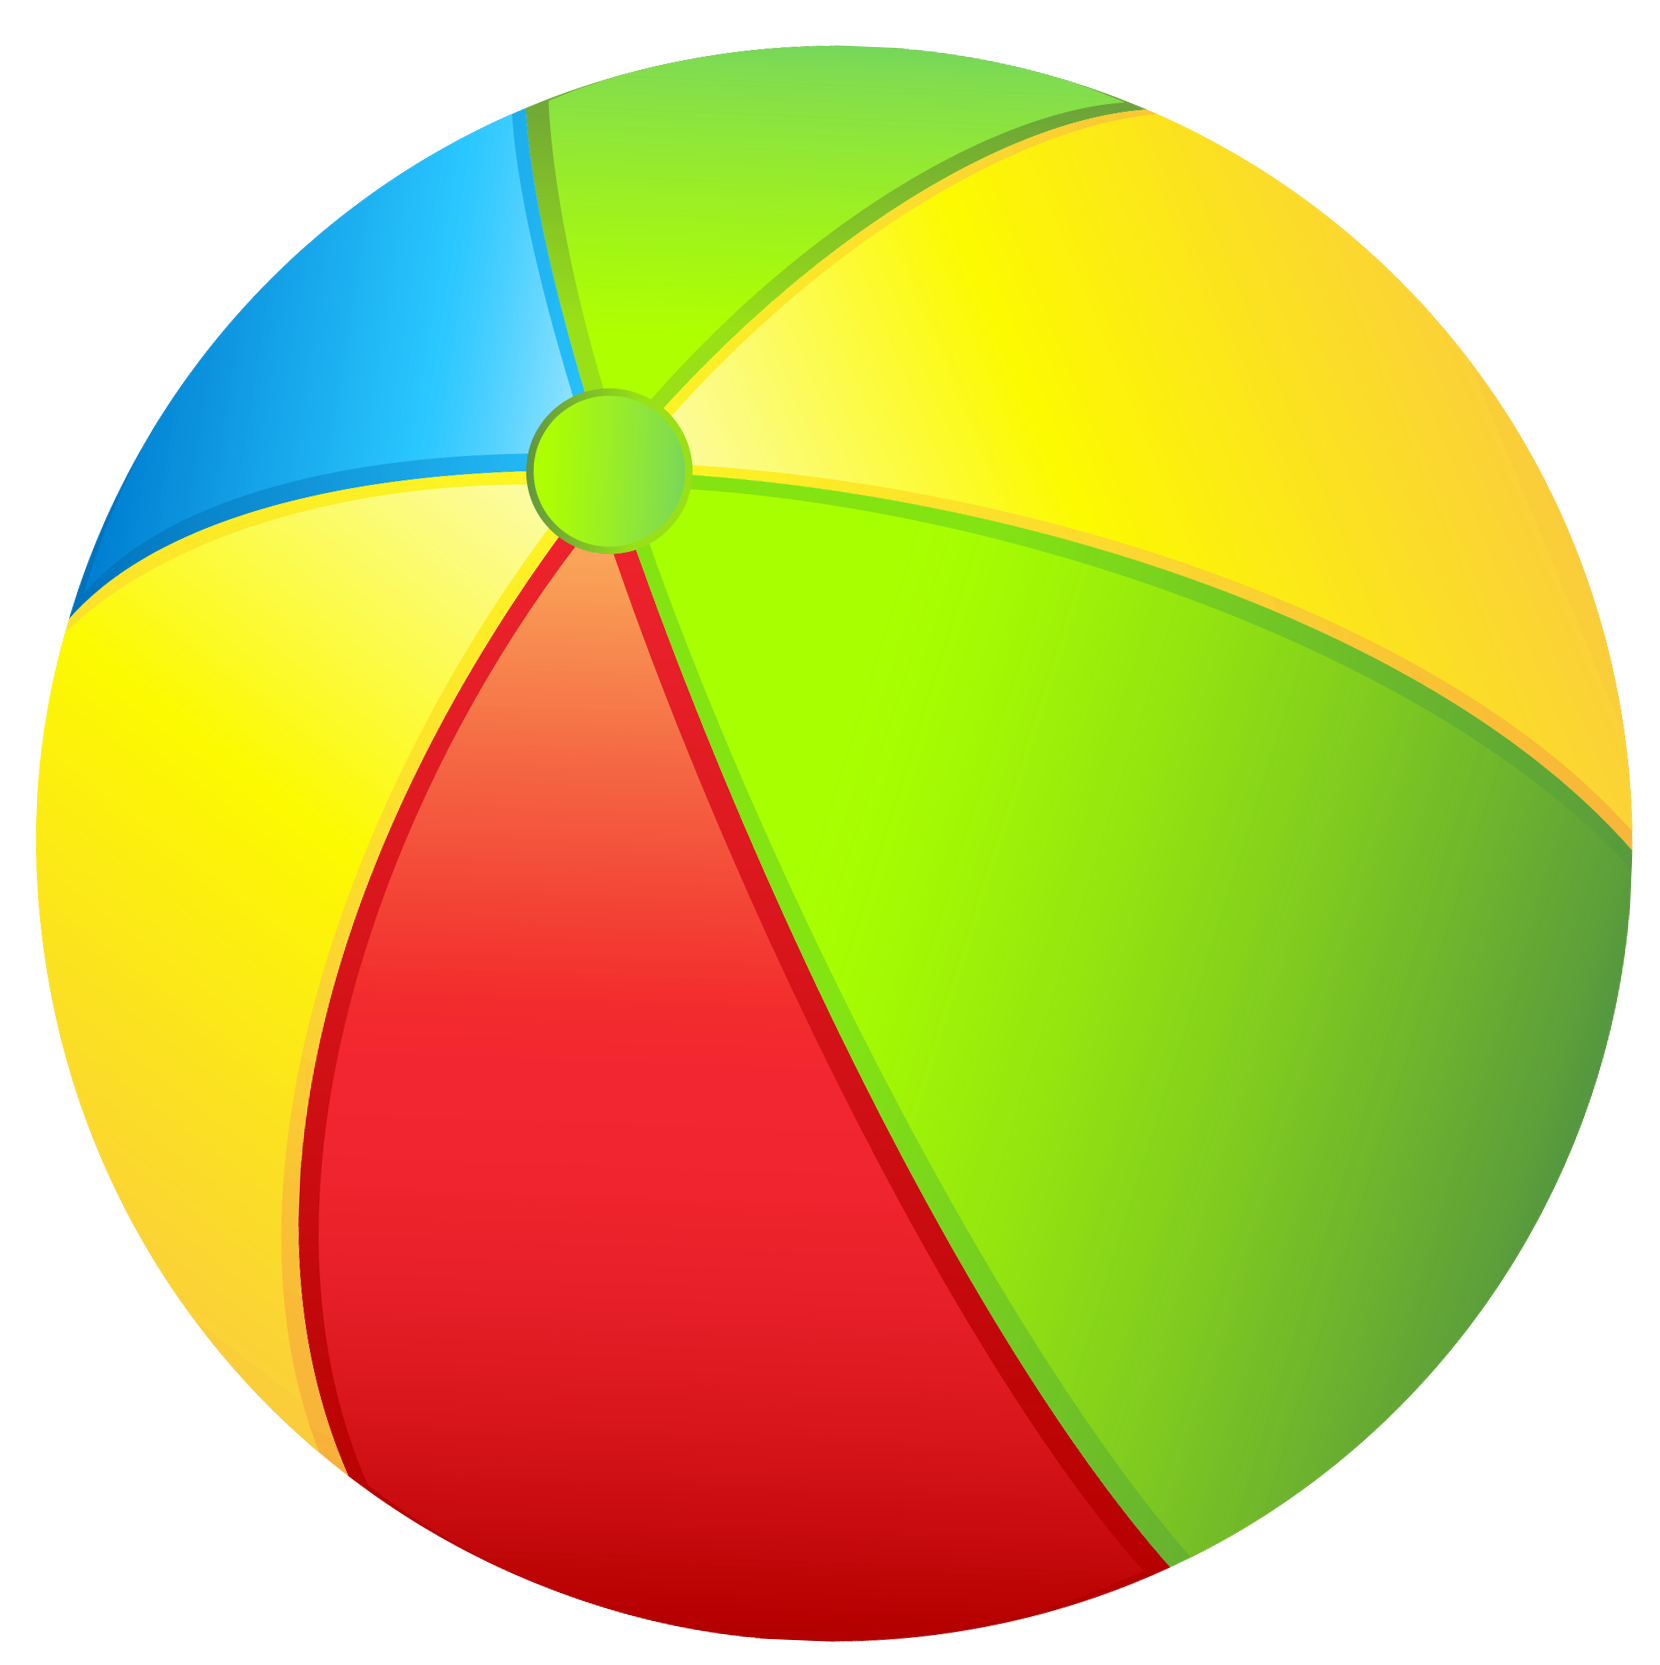 Transparent beach ball png. Beachball clipart